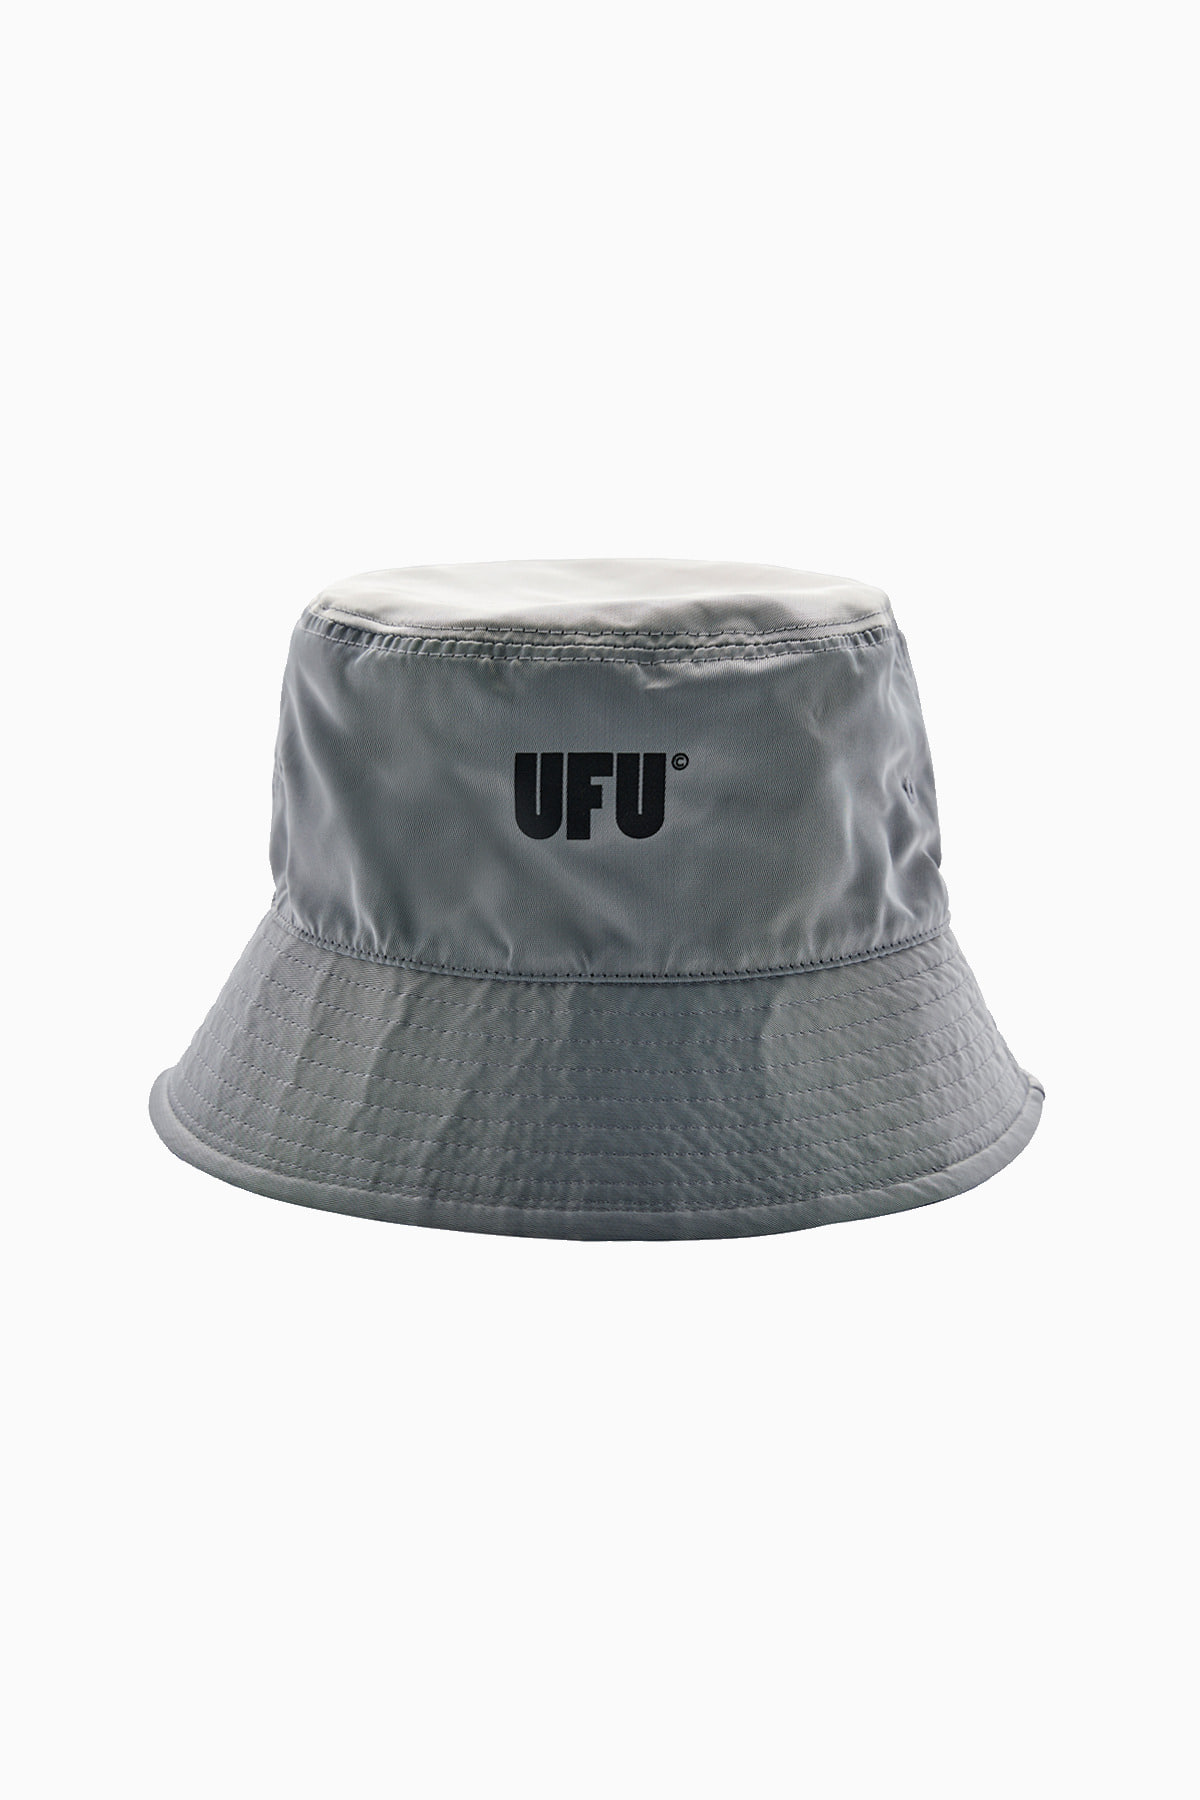 UFU BUCKET HAT_GREY